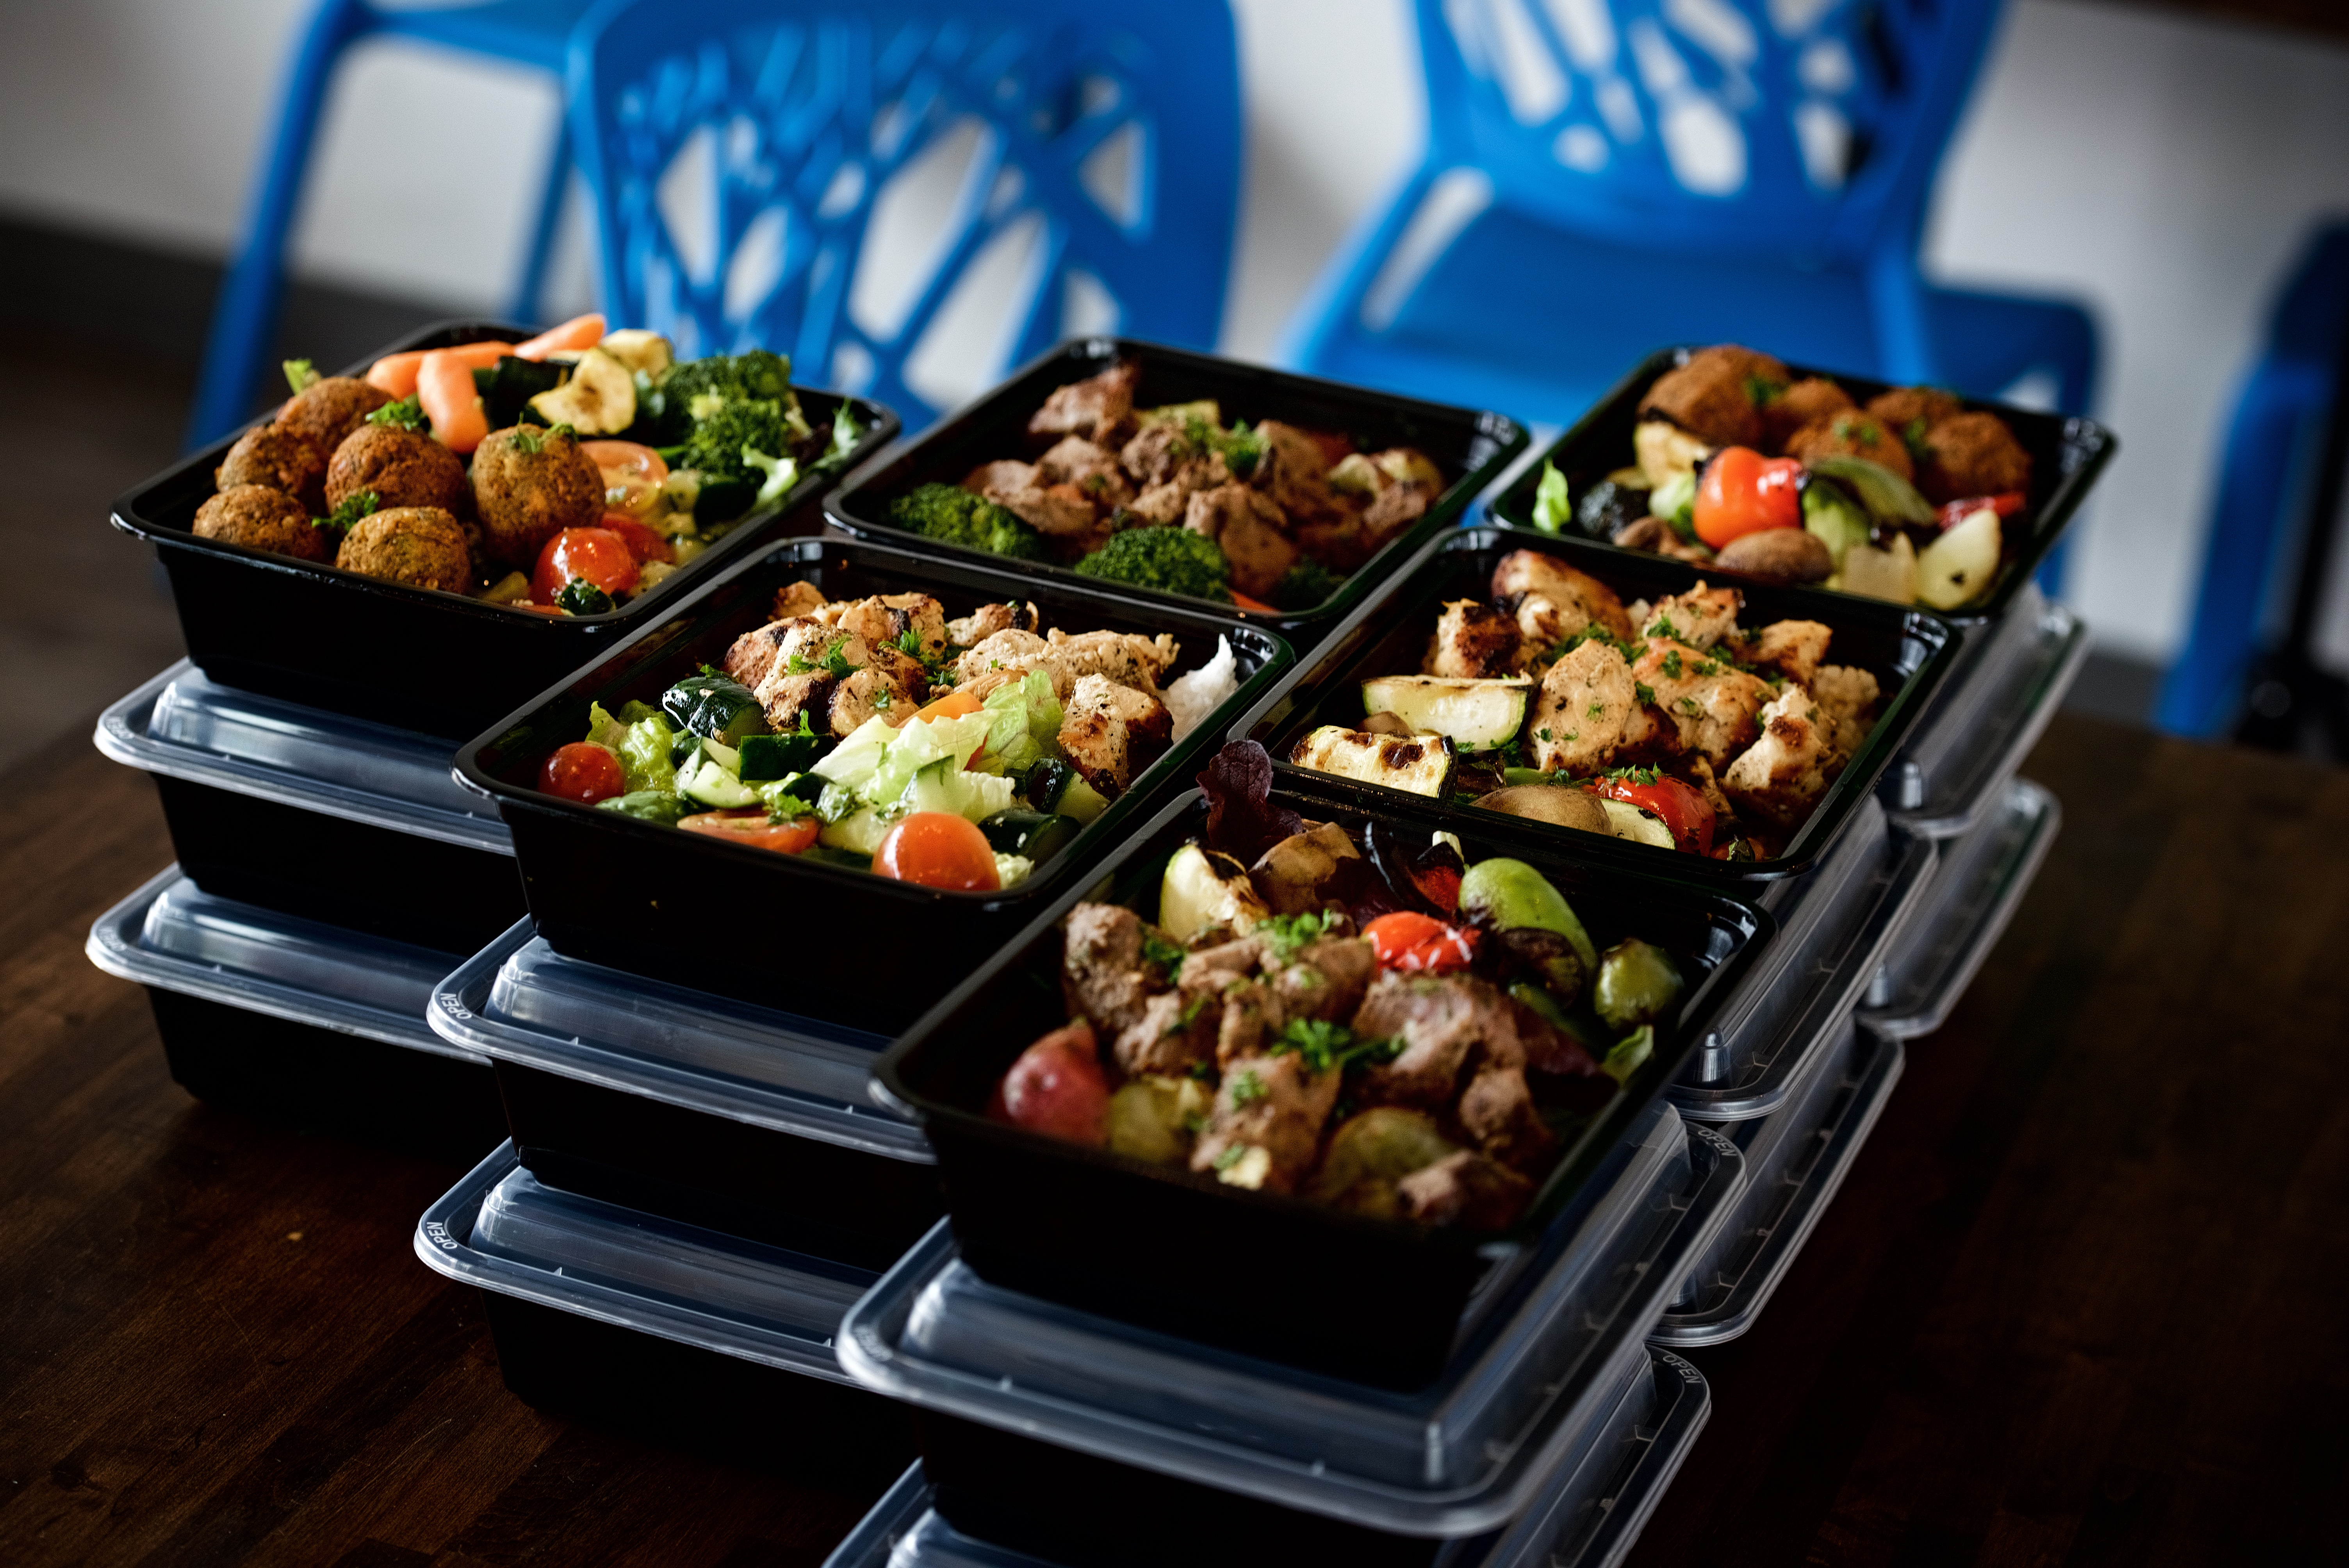 MEAL PREP that is made fresh.